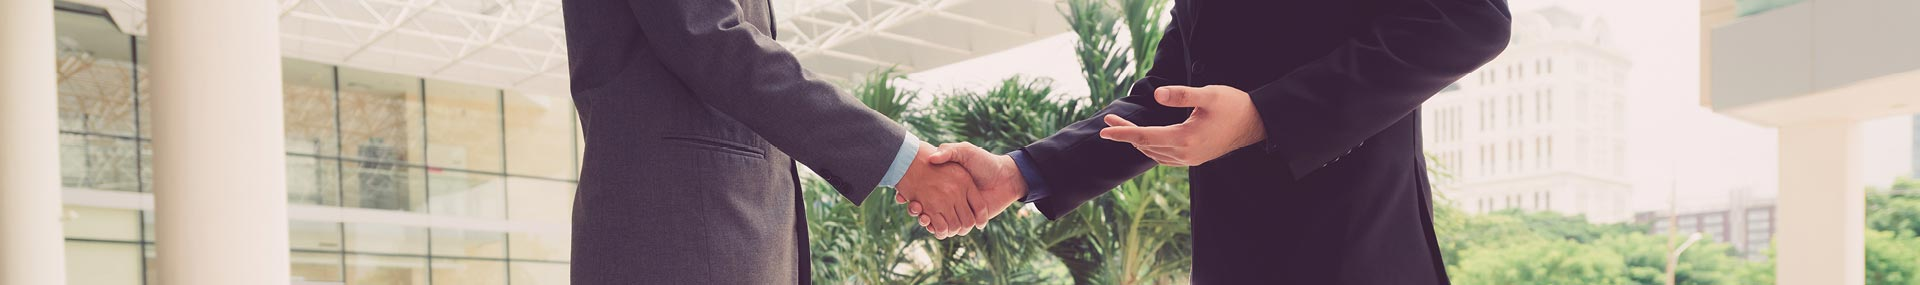 focus of image is on a handshake in an office environment